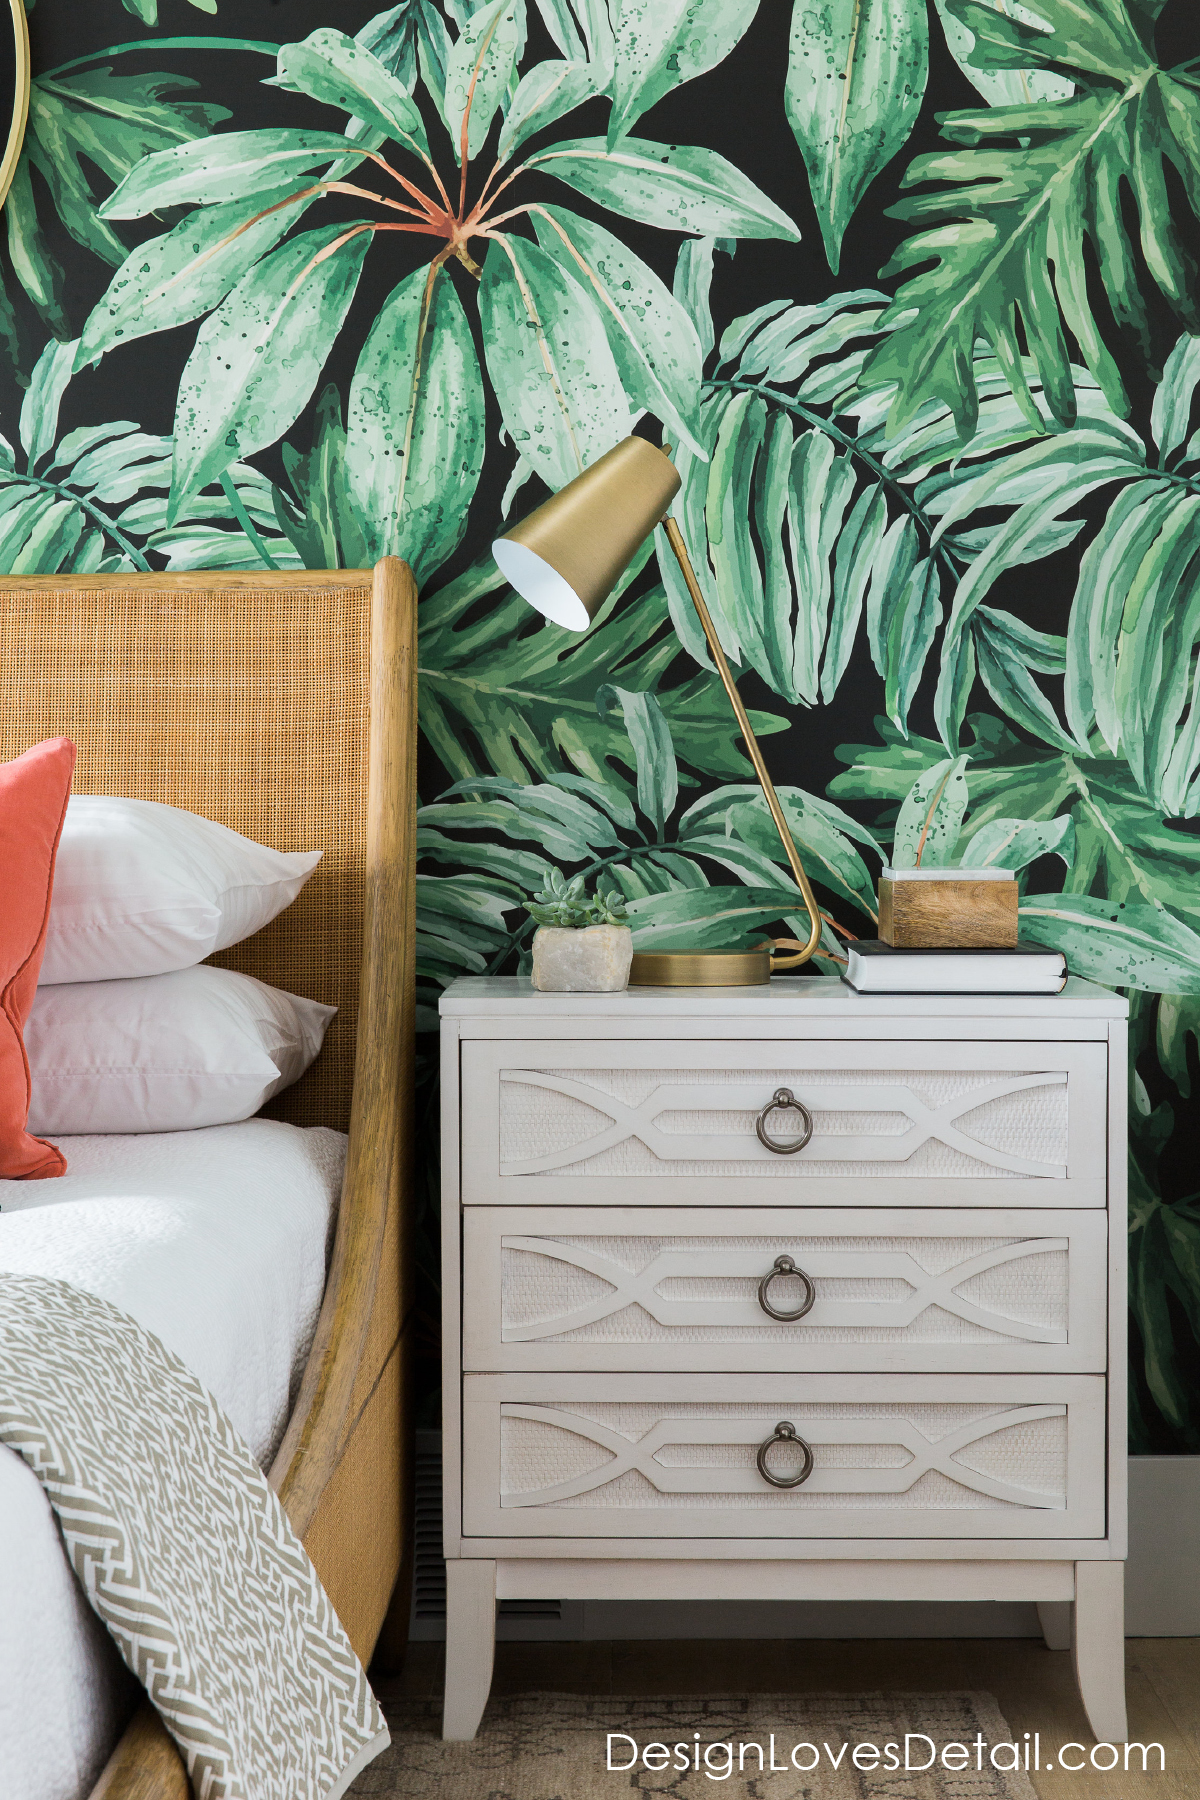 A fresh & fun guest room retreat! Love the tropical vibes and bold pattern wallpaper.